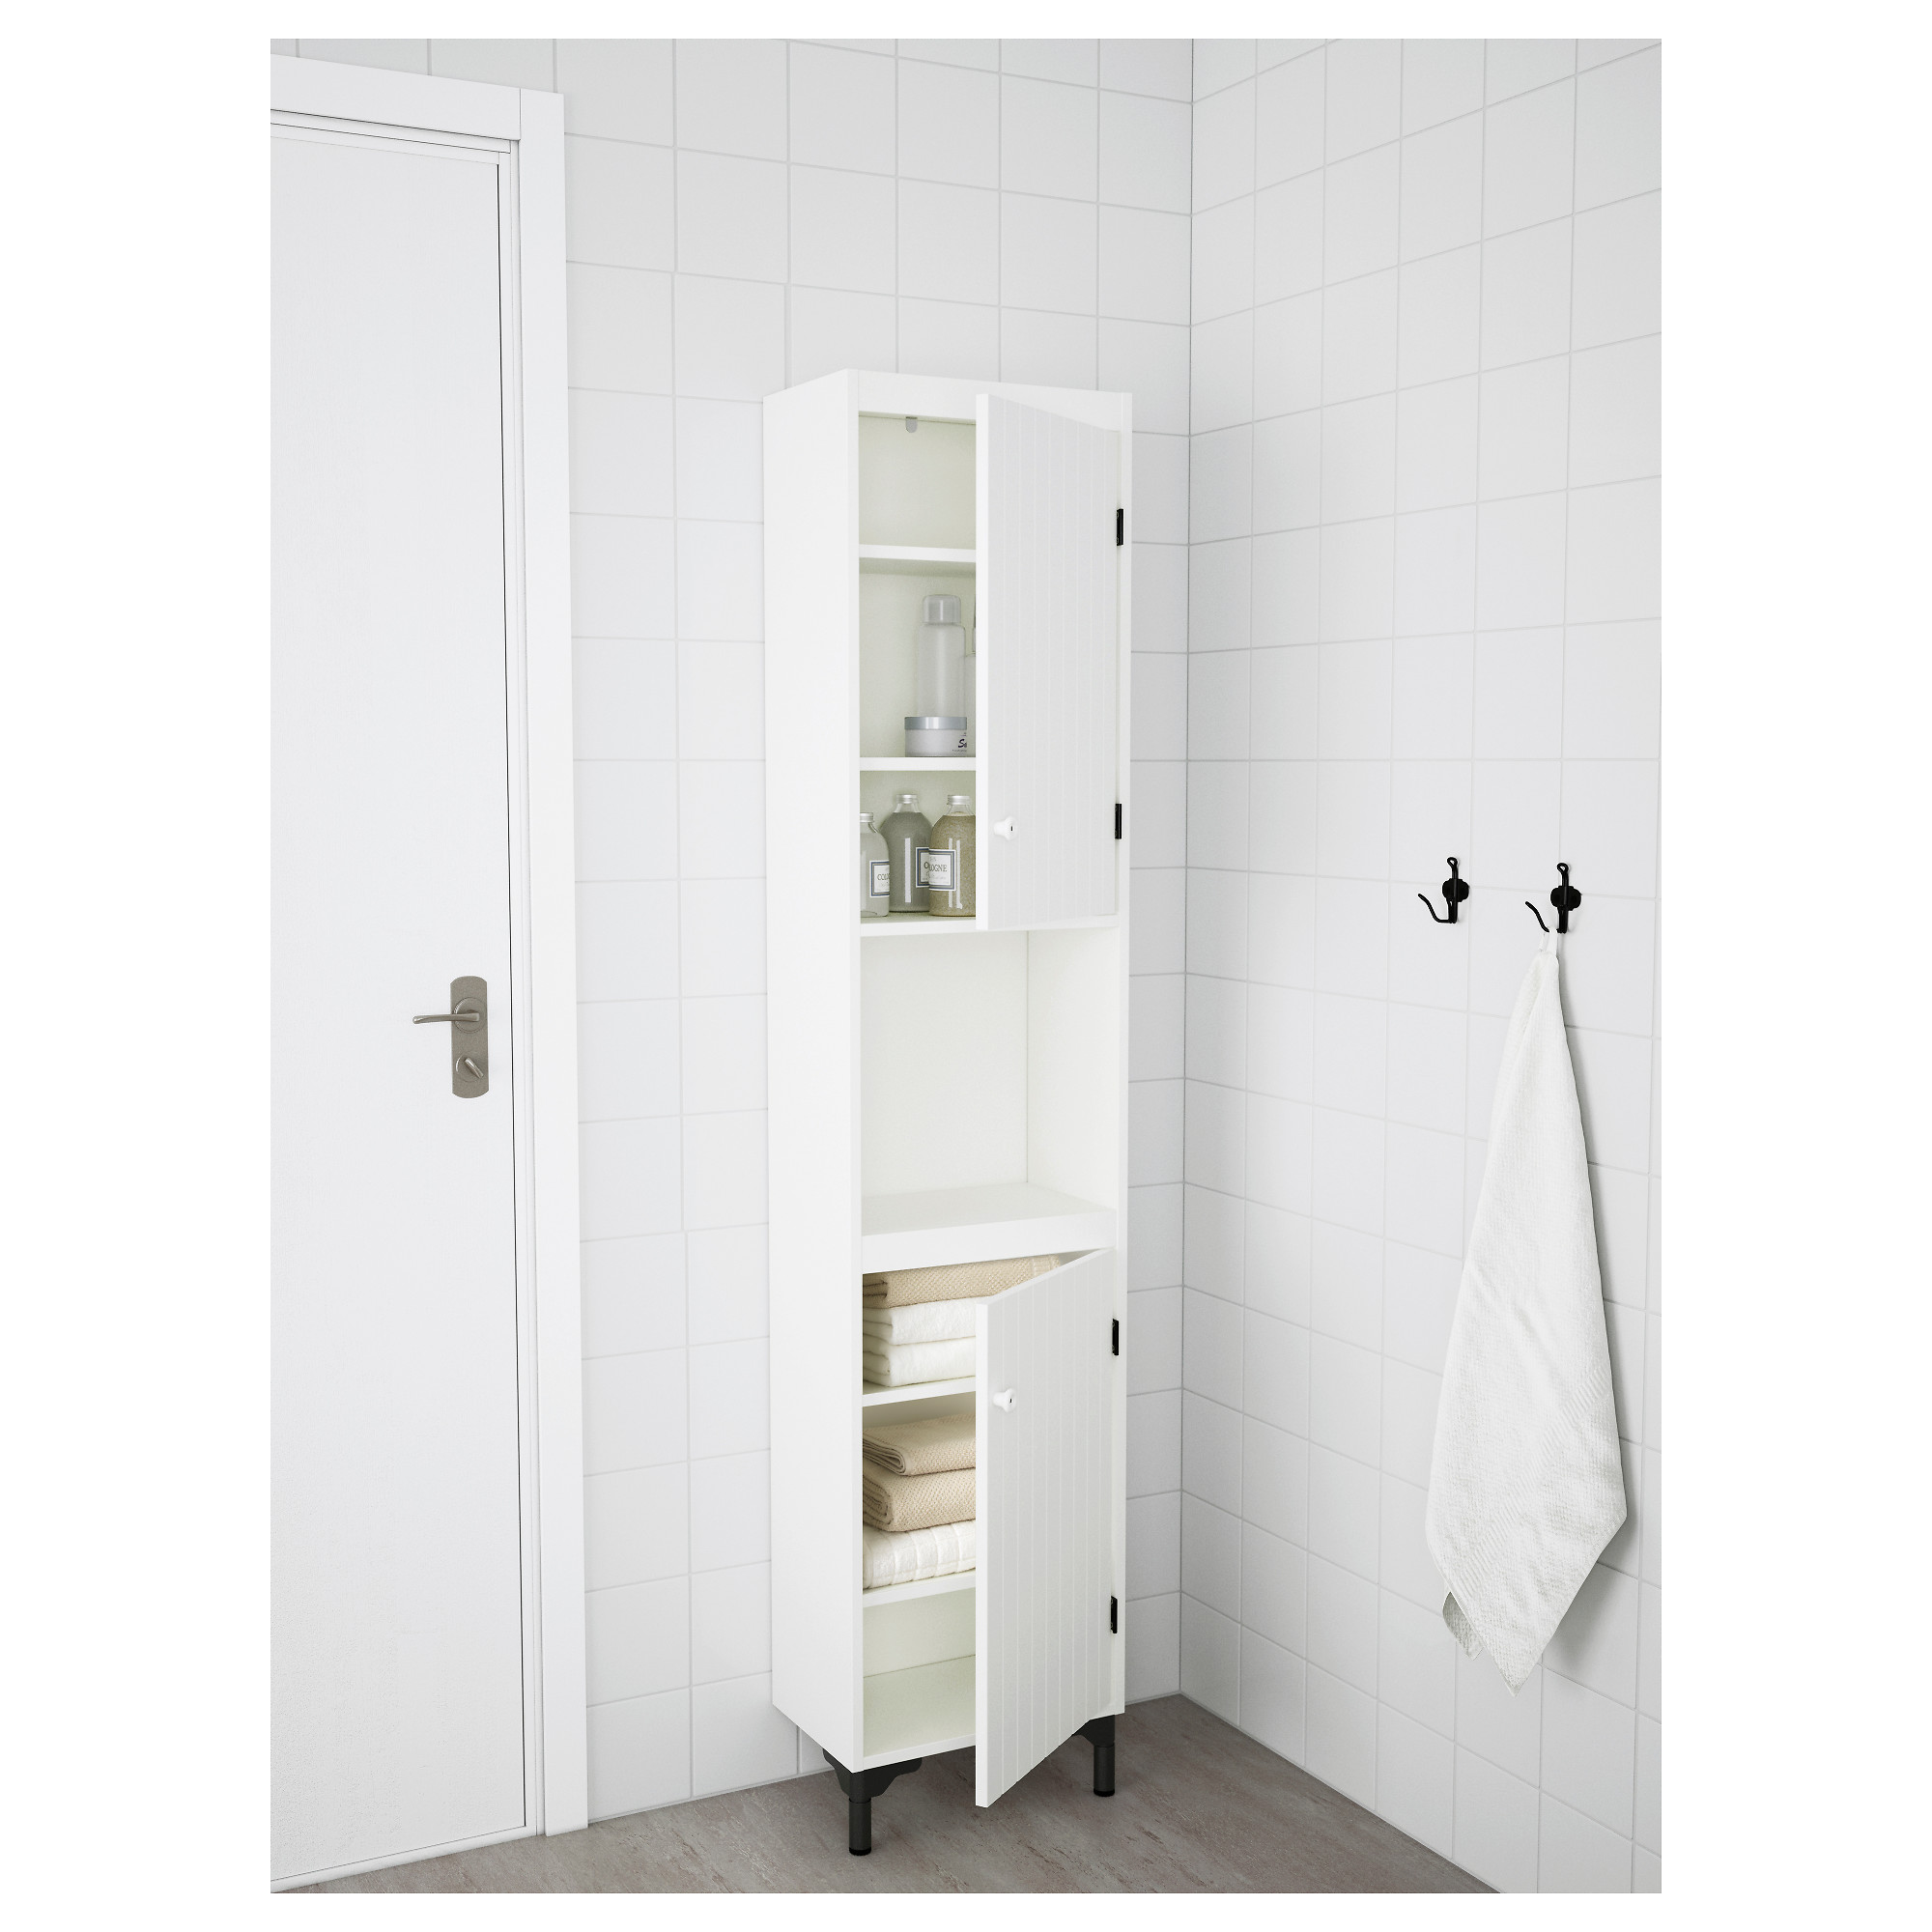 Ikea Bathroom Cabinet Doors Home Decoration Interior Design